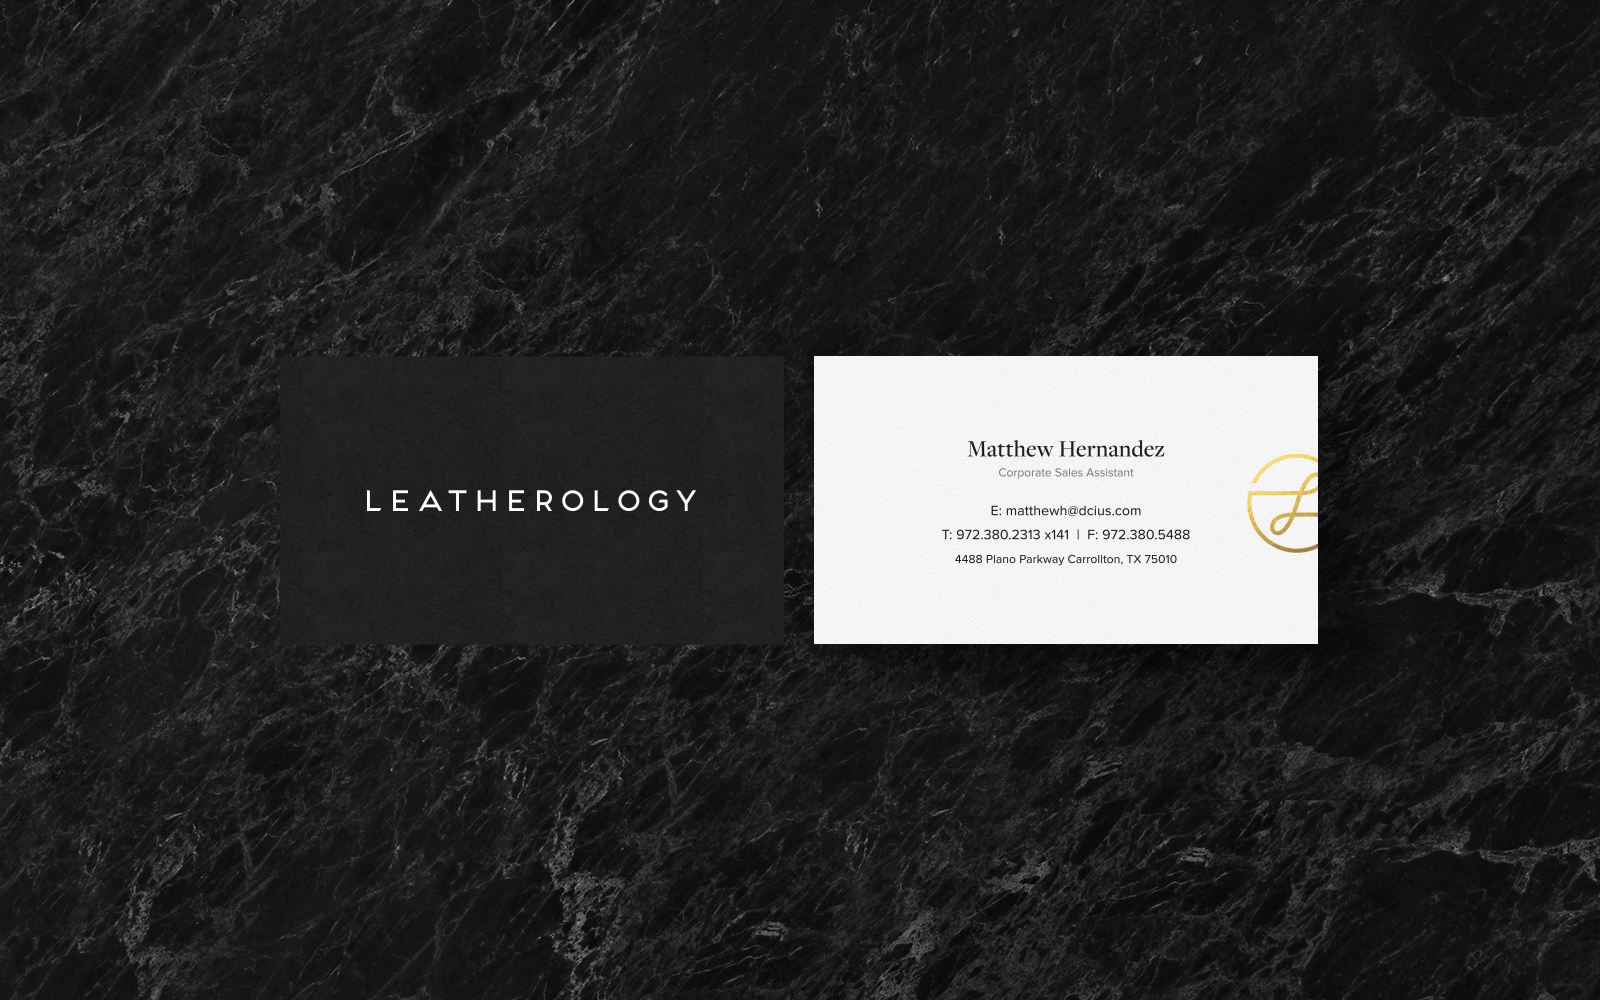 Leatherology-business-cards